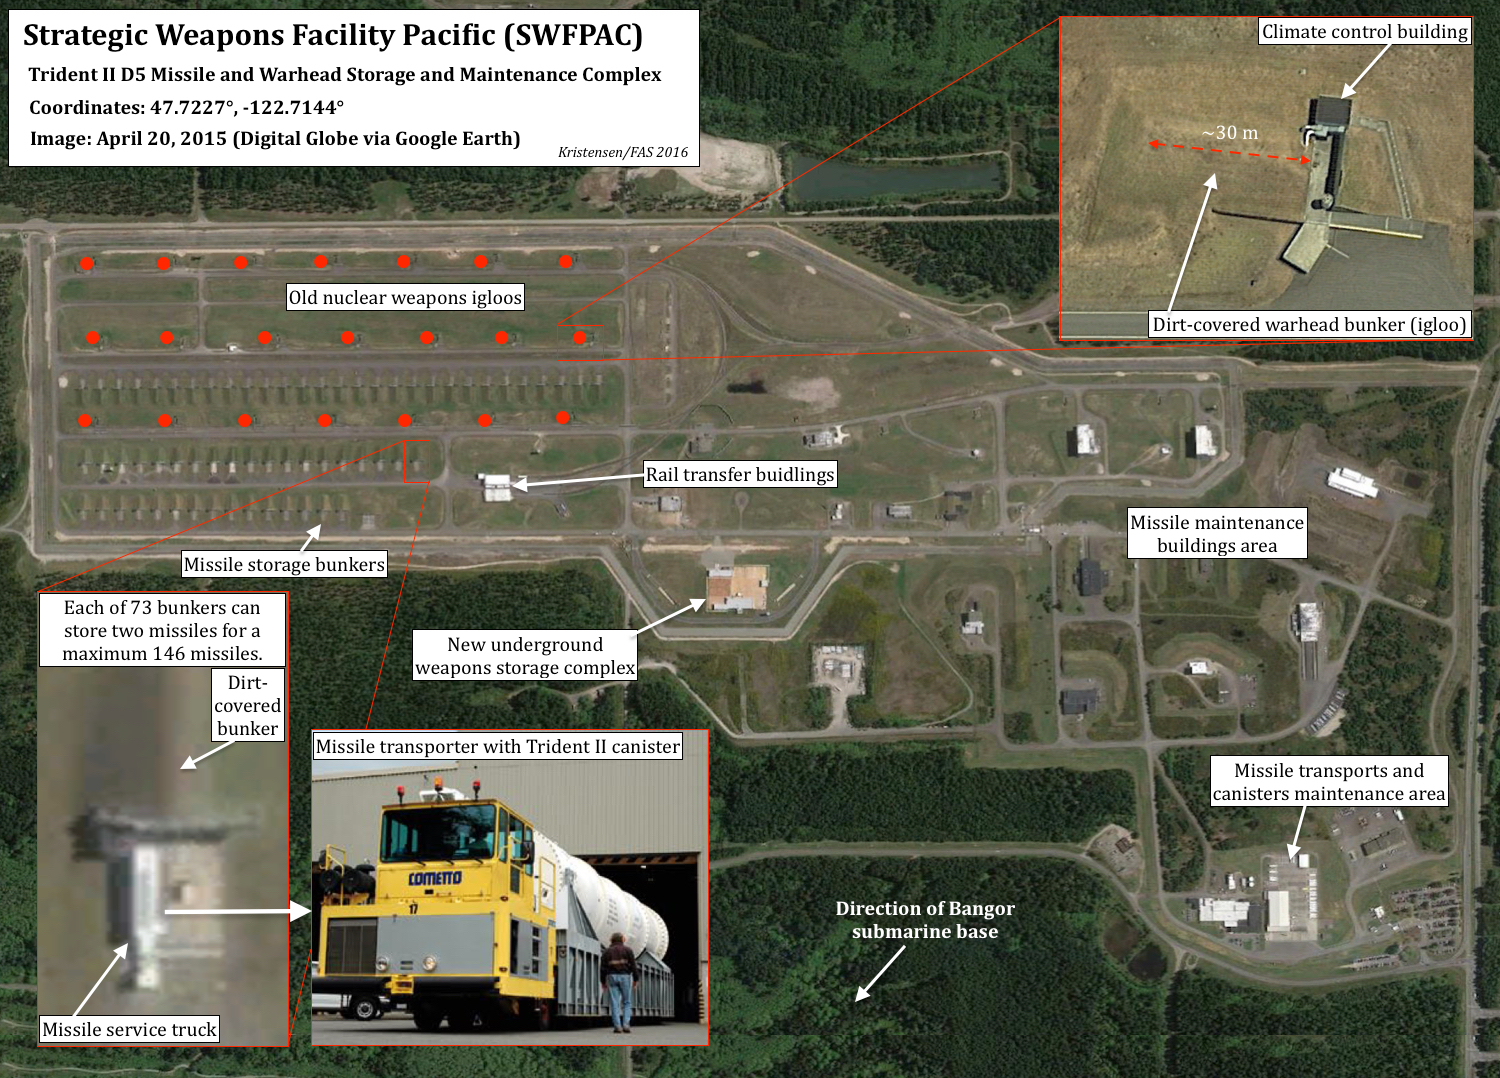 Navy Builds Underground Nuclear Weapons Storage Facility